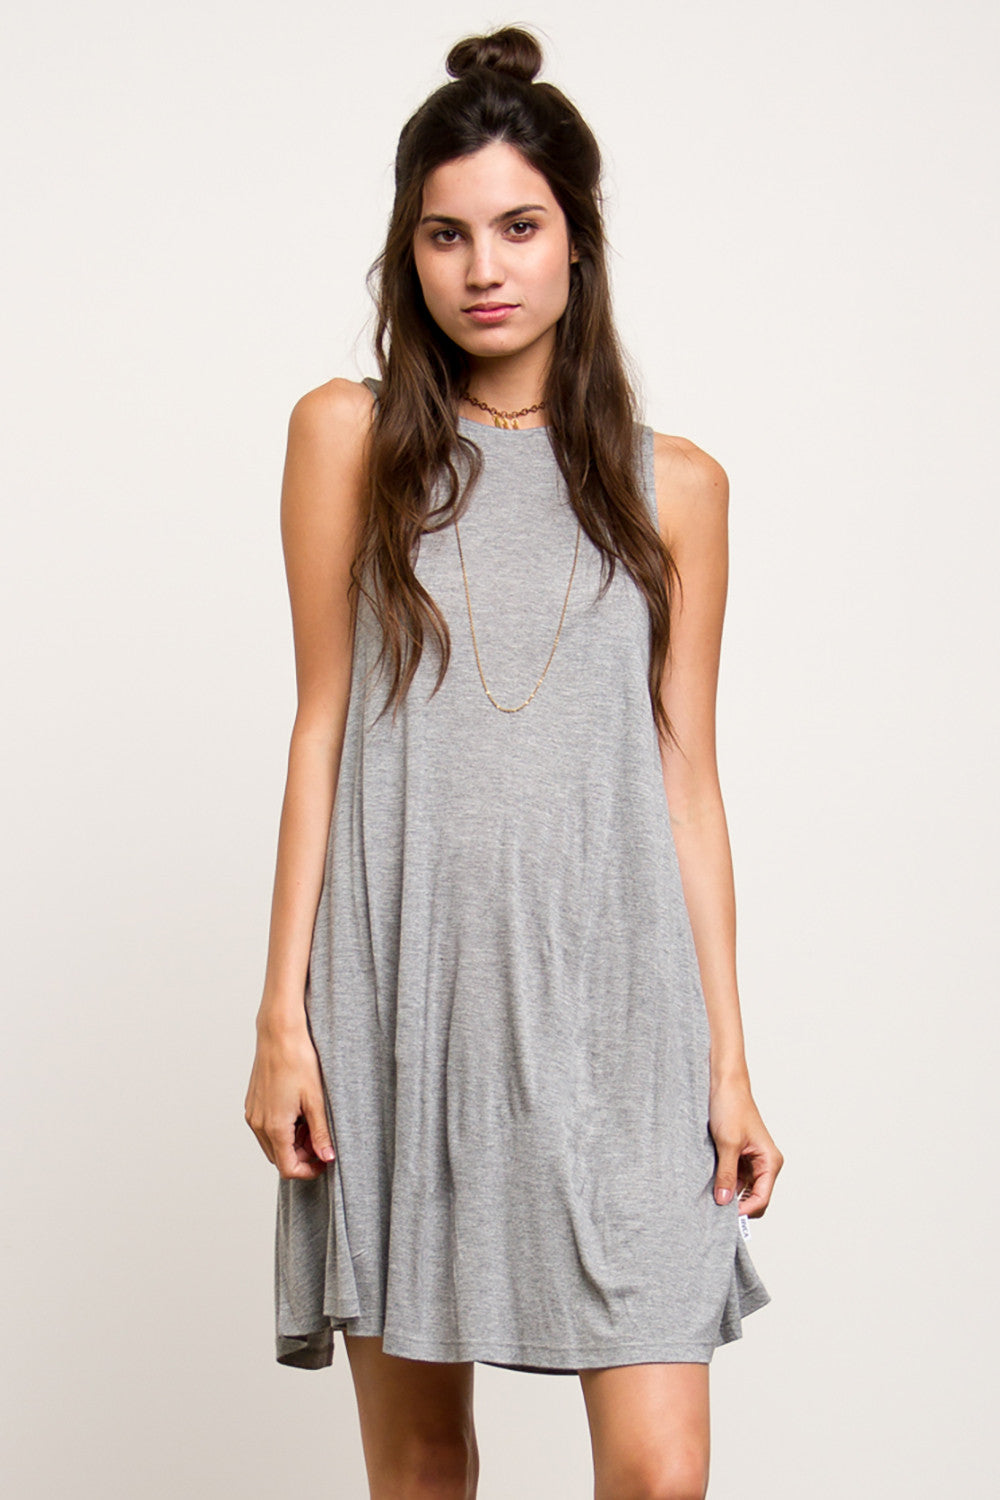 e23a1eecce4 ... RVCA High Neck Jersey Knit Swing Dress - Inspire L  Amour ...